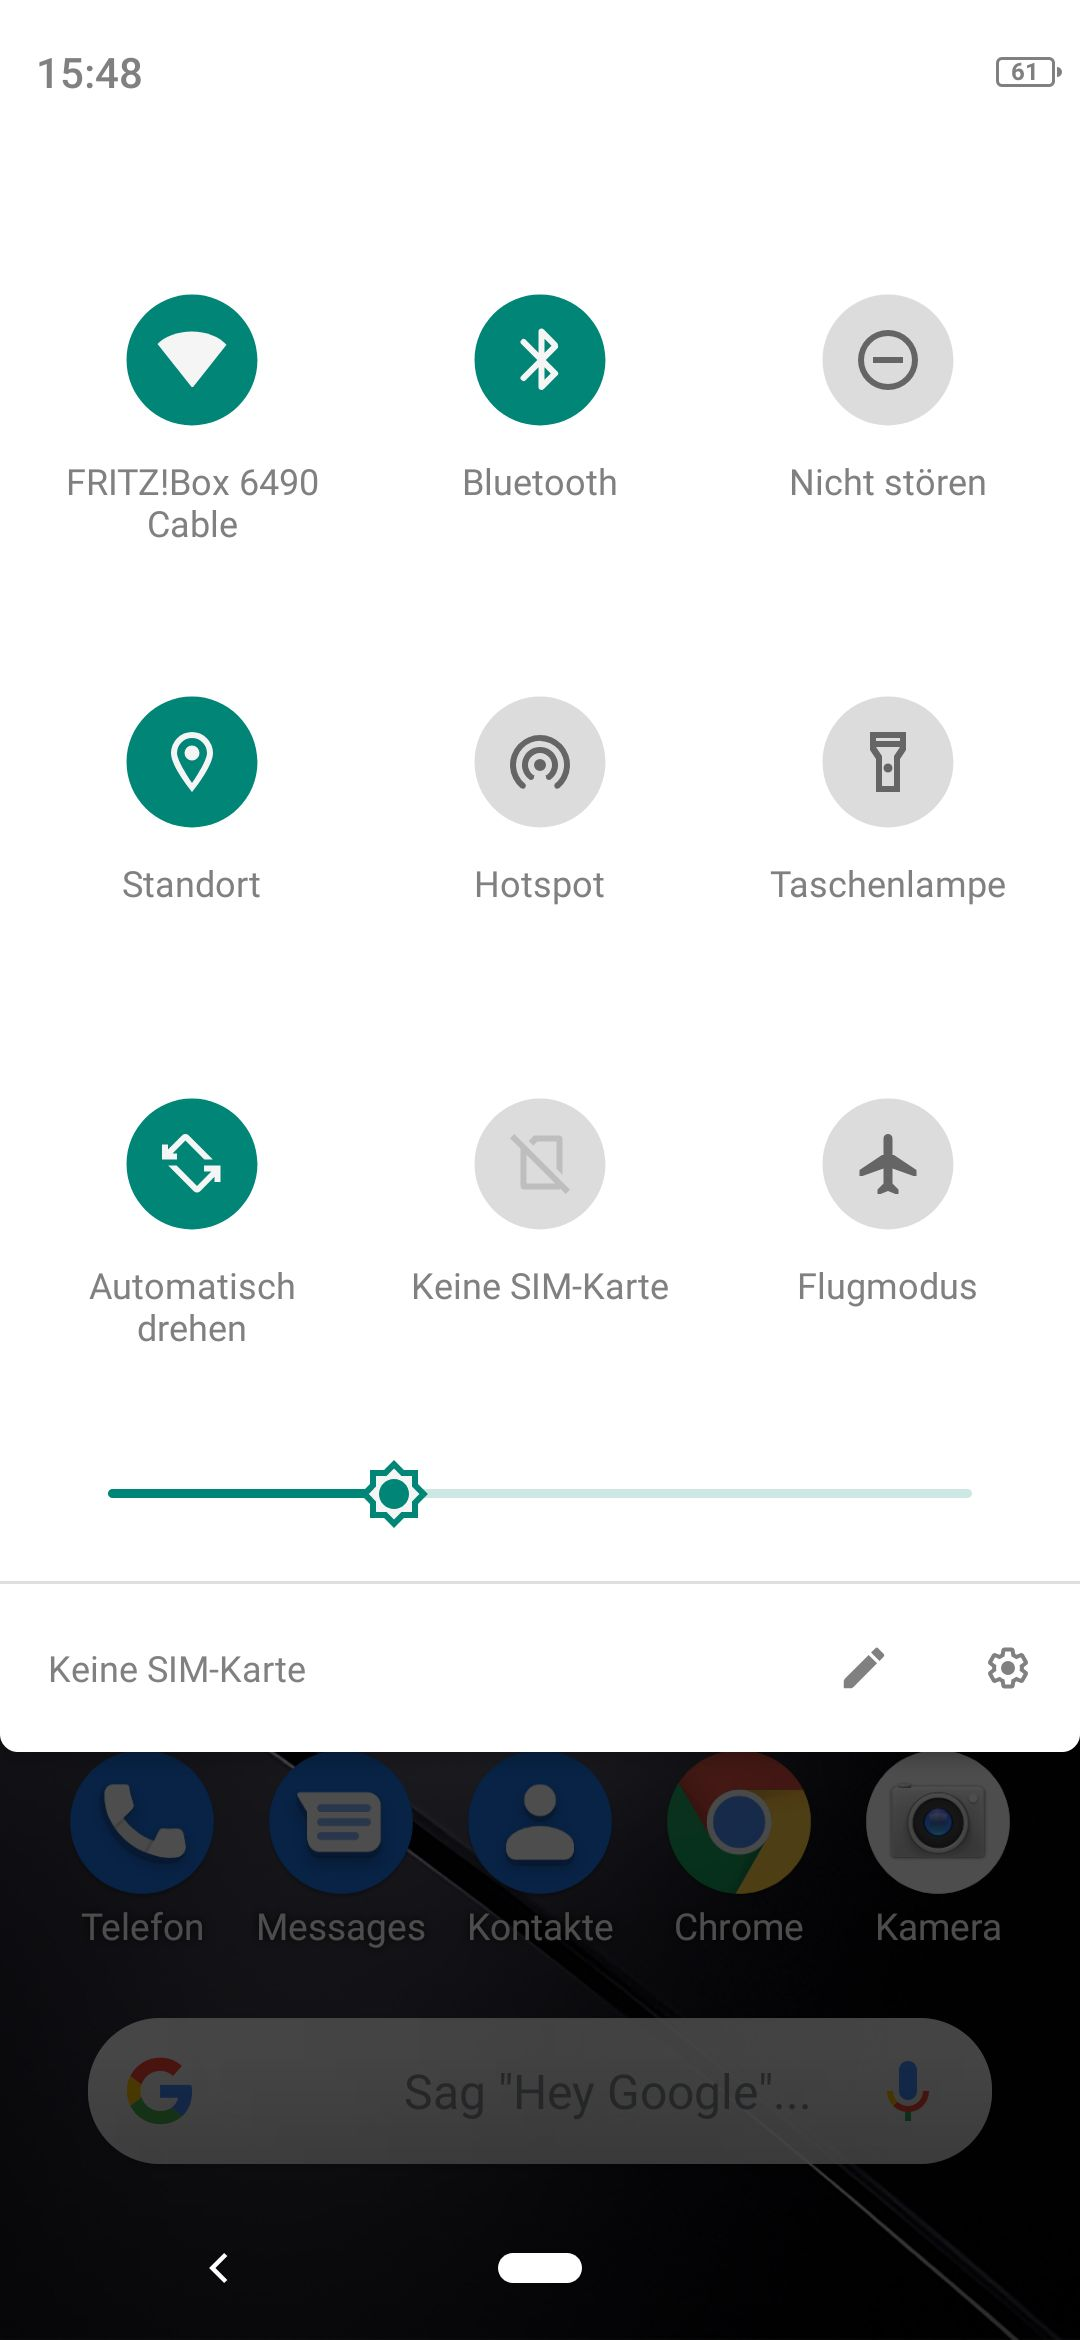 Gigaset Gs290 Quick Toggles